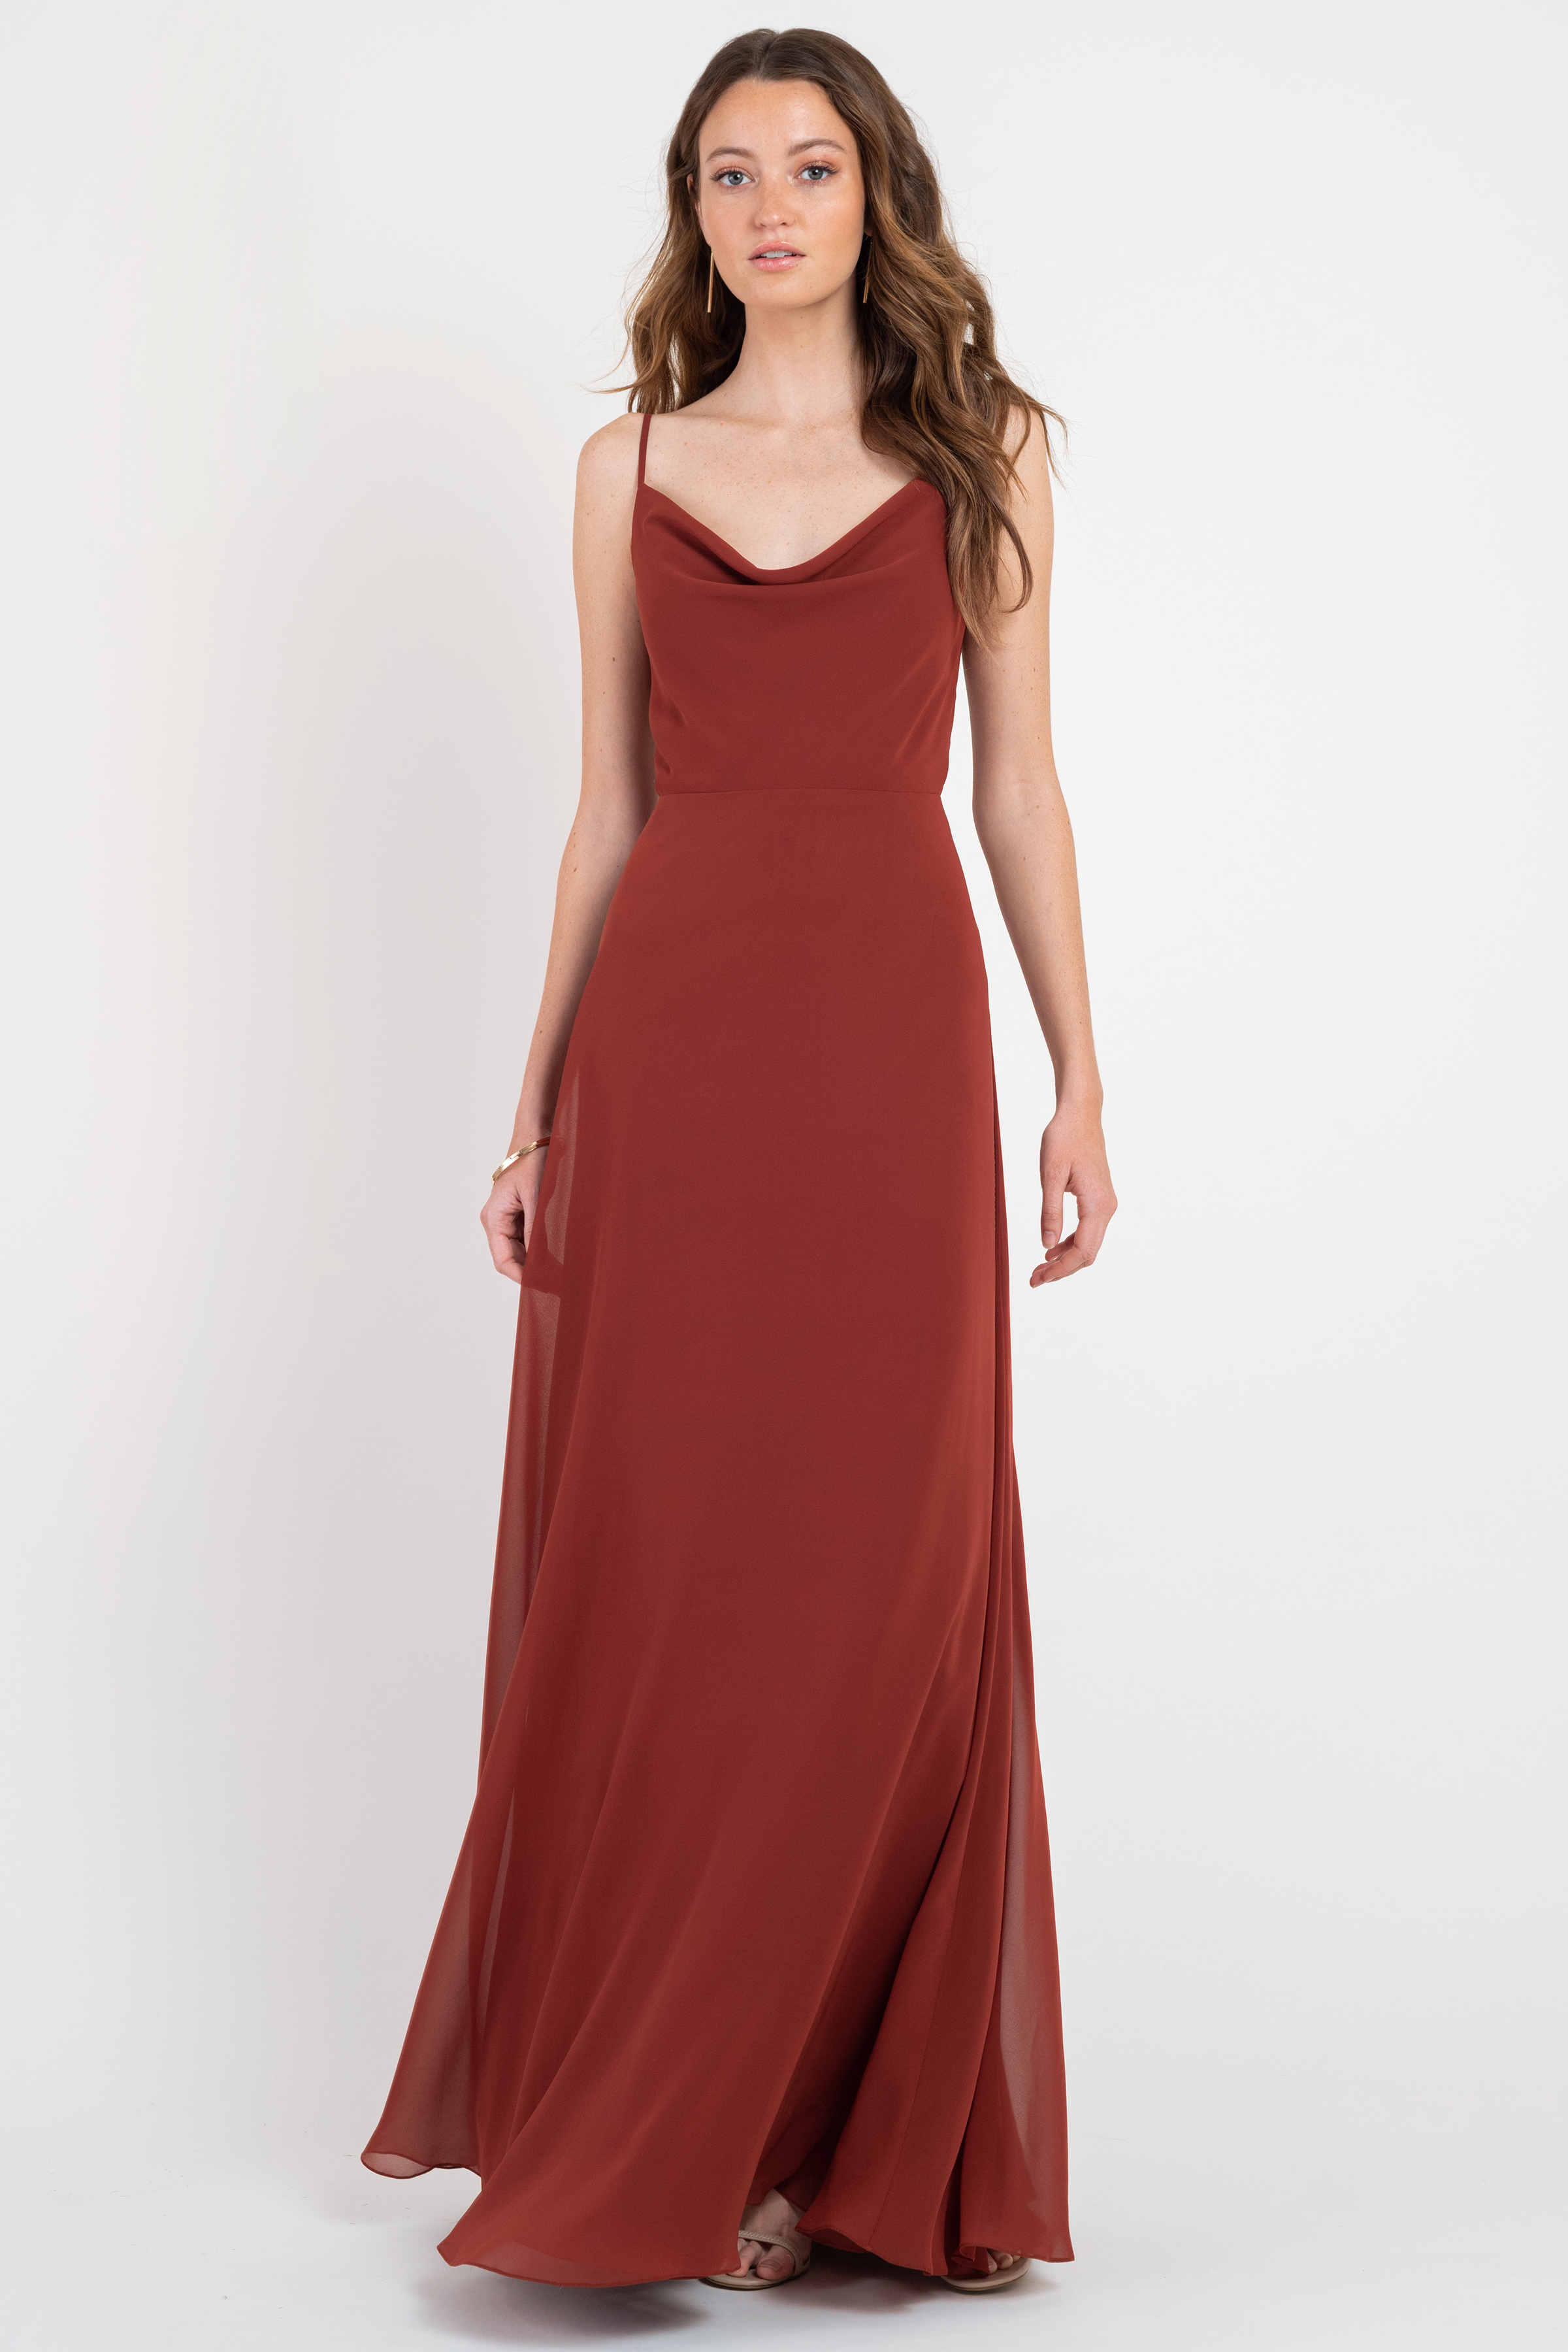 The slip dress of your dreams! The Colby's chic cowl neckline is taken to next level by her twirl worthy skirt.